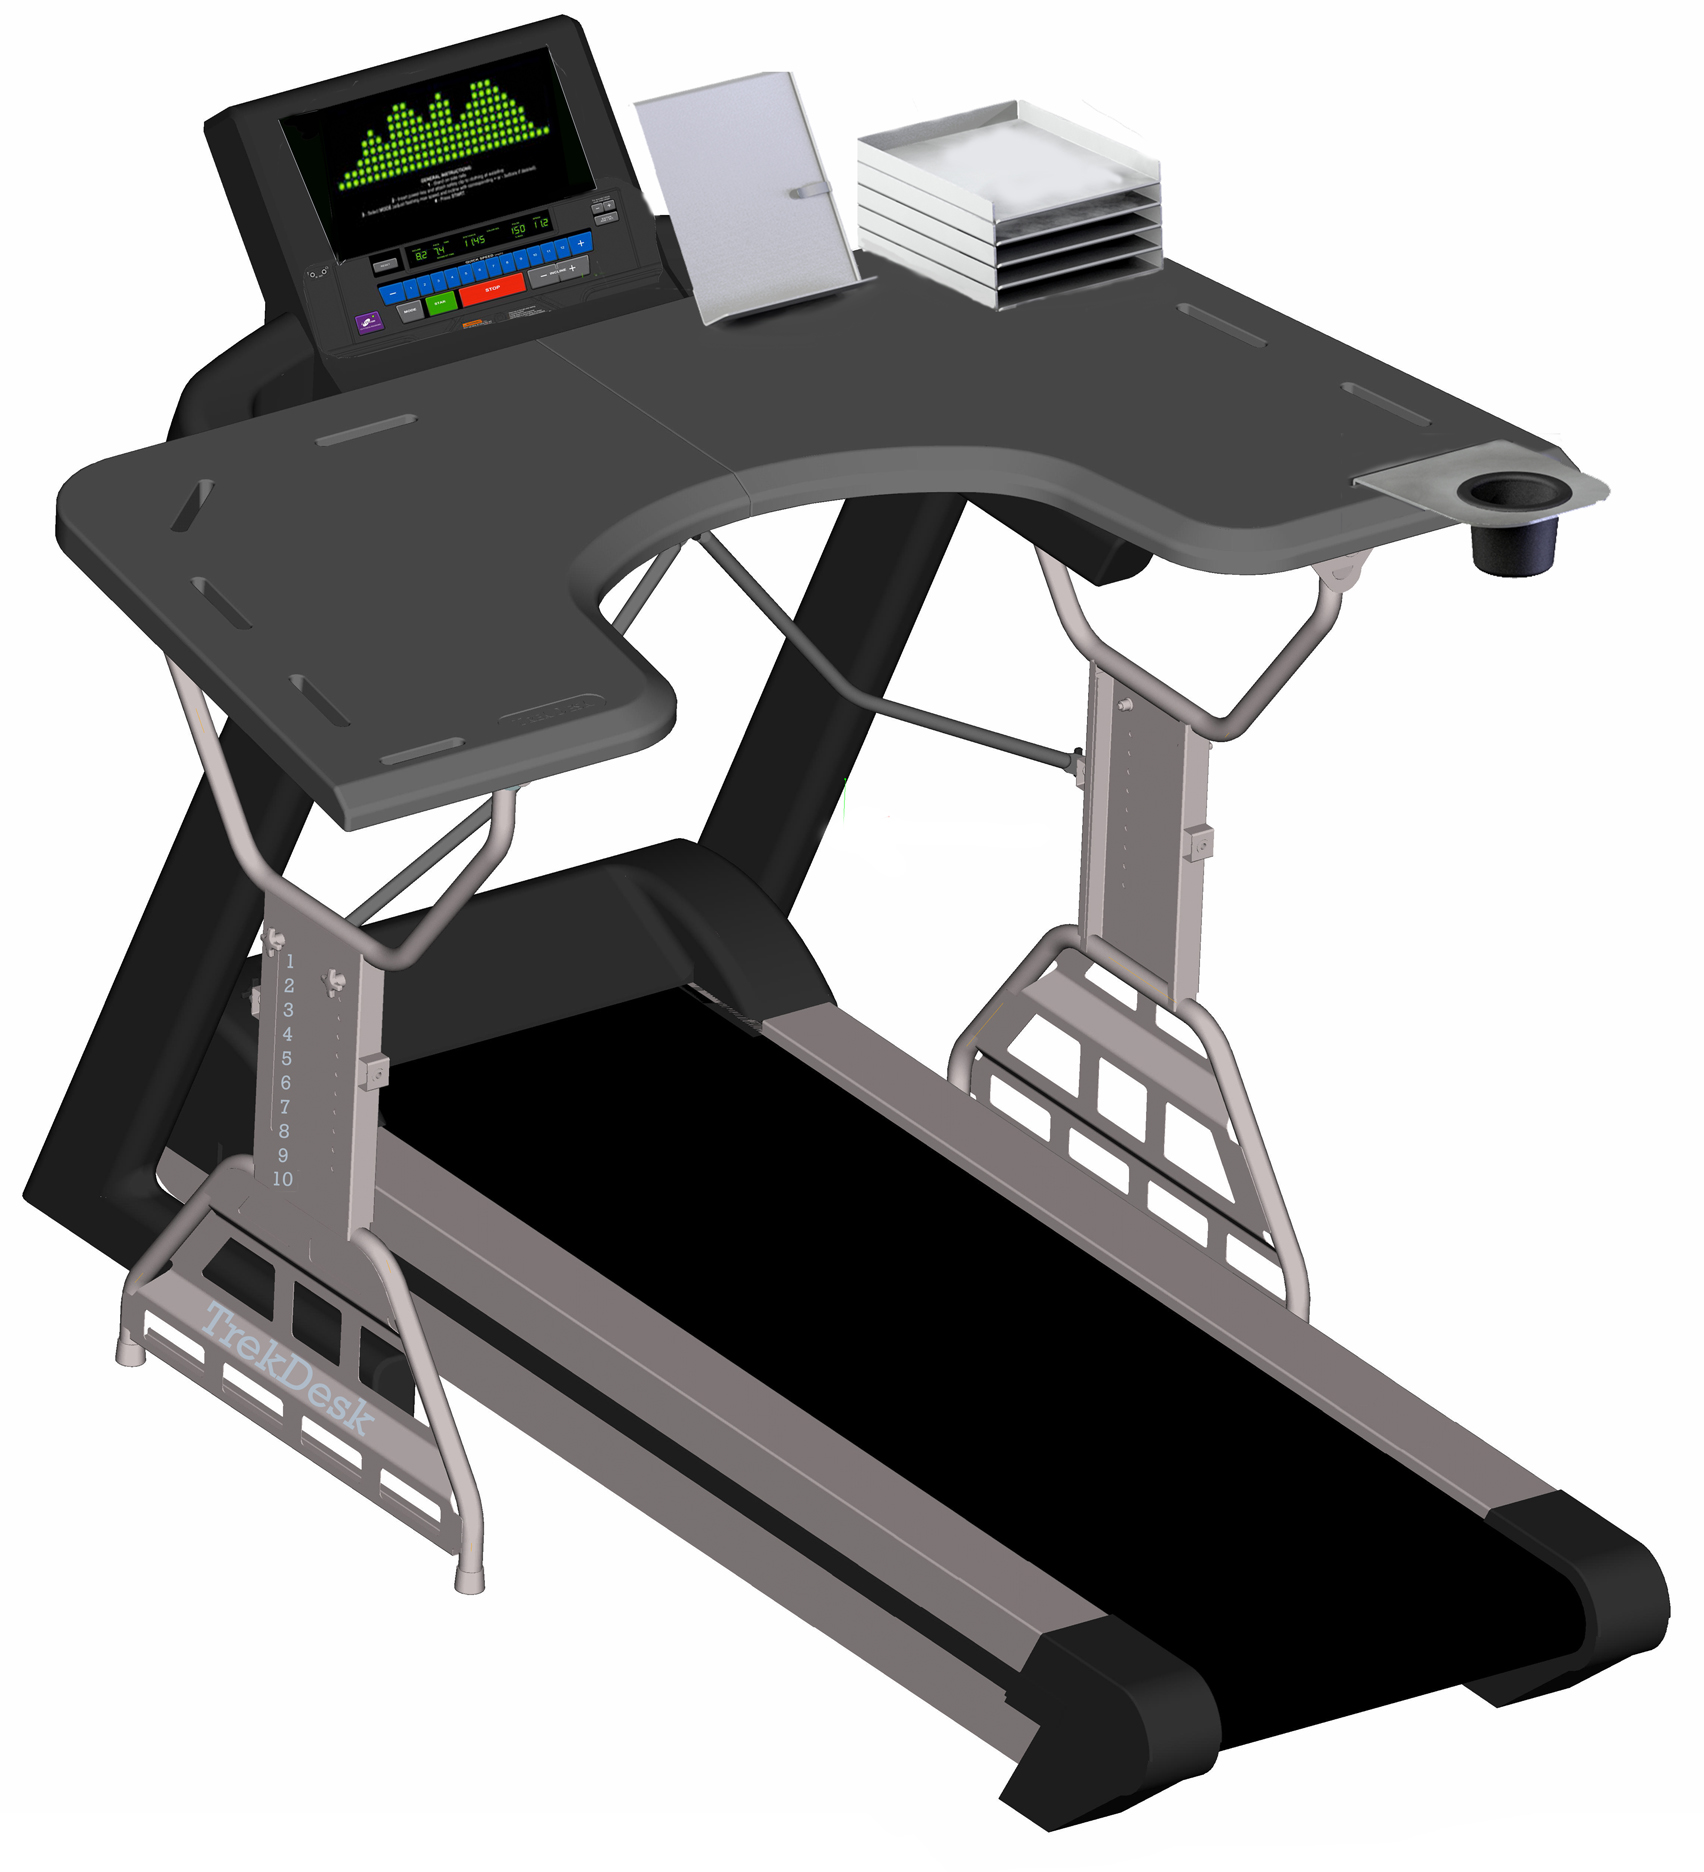 Sole Treadmill Power Requirements: /Fitness Gear 810t Treadmill Owners Manual/. /treadmill